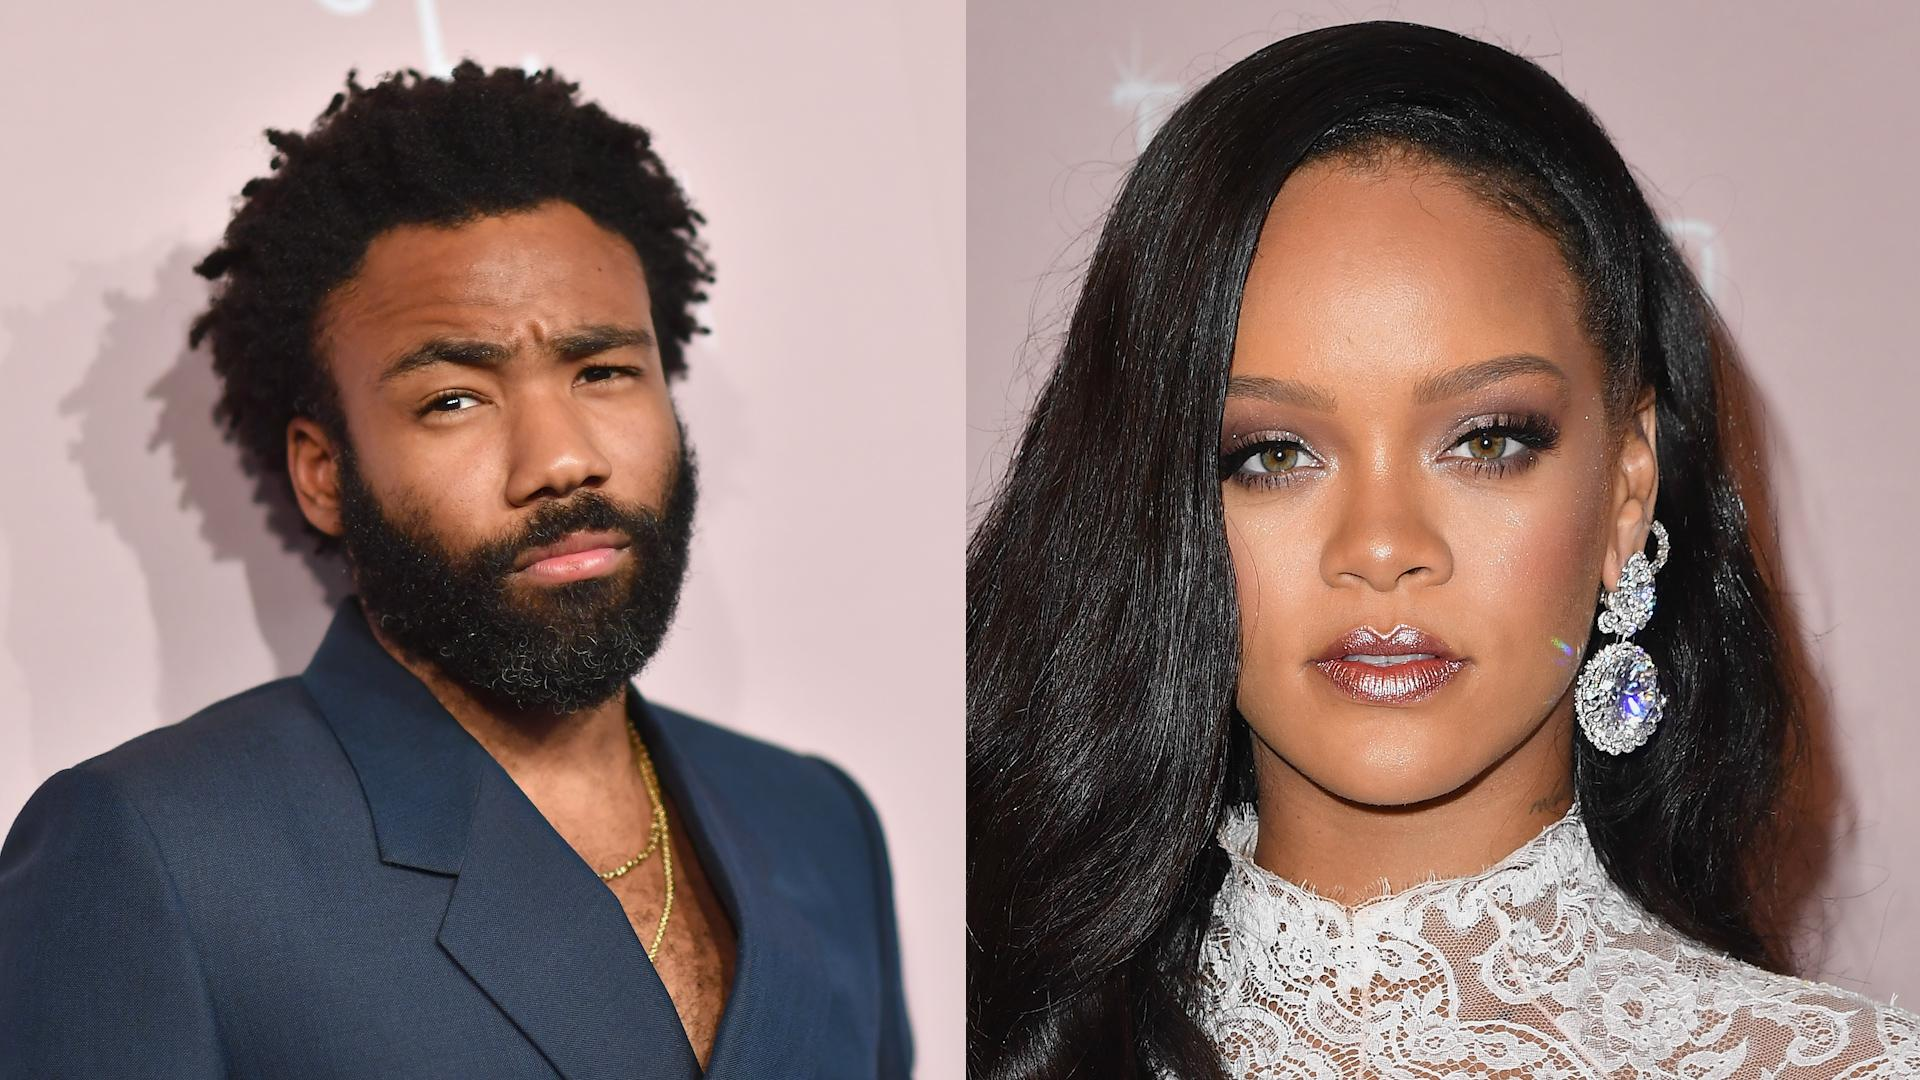 Rihanna Calls Donald Glover 'a True Gem' After 'Overwhelming' Response to Short Film 'Guava Island'